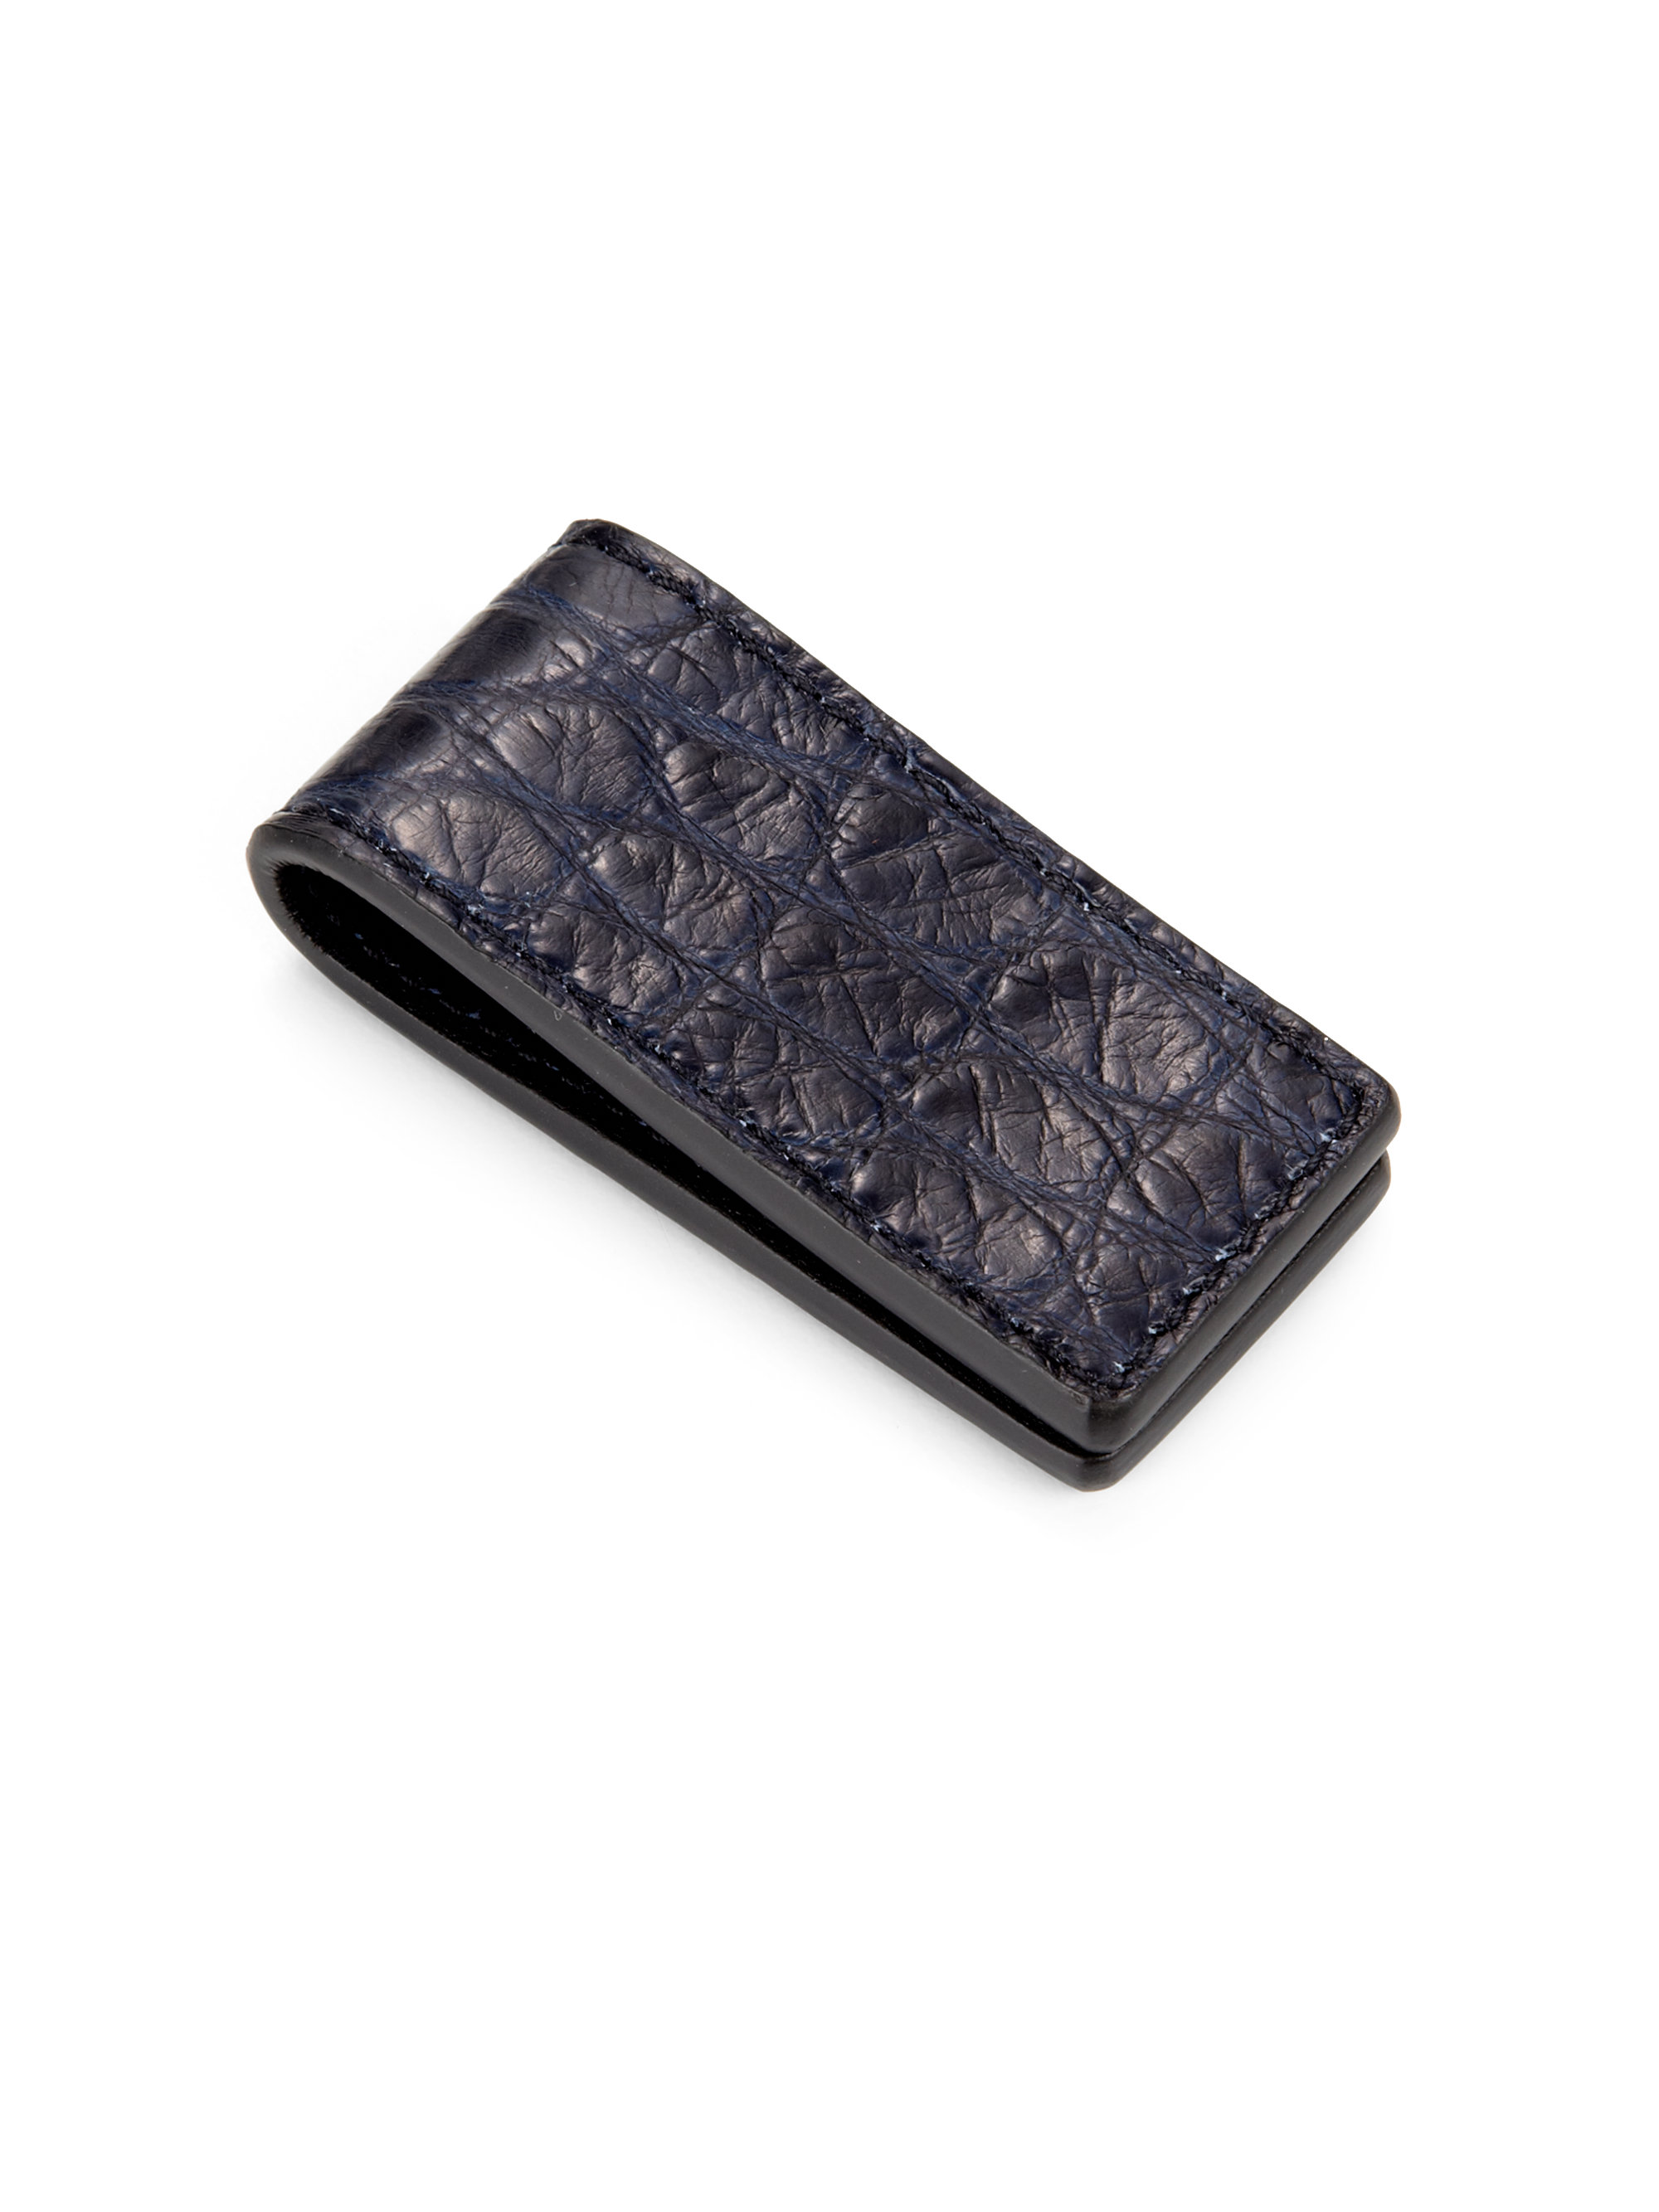 Gucci Money Clip | Bifold Money Clip Wallet | Gucci Long Wallet Men